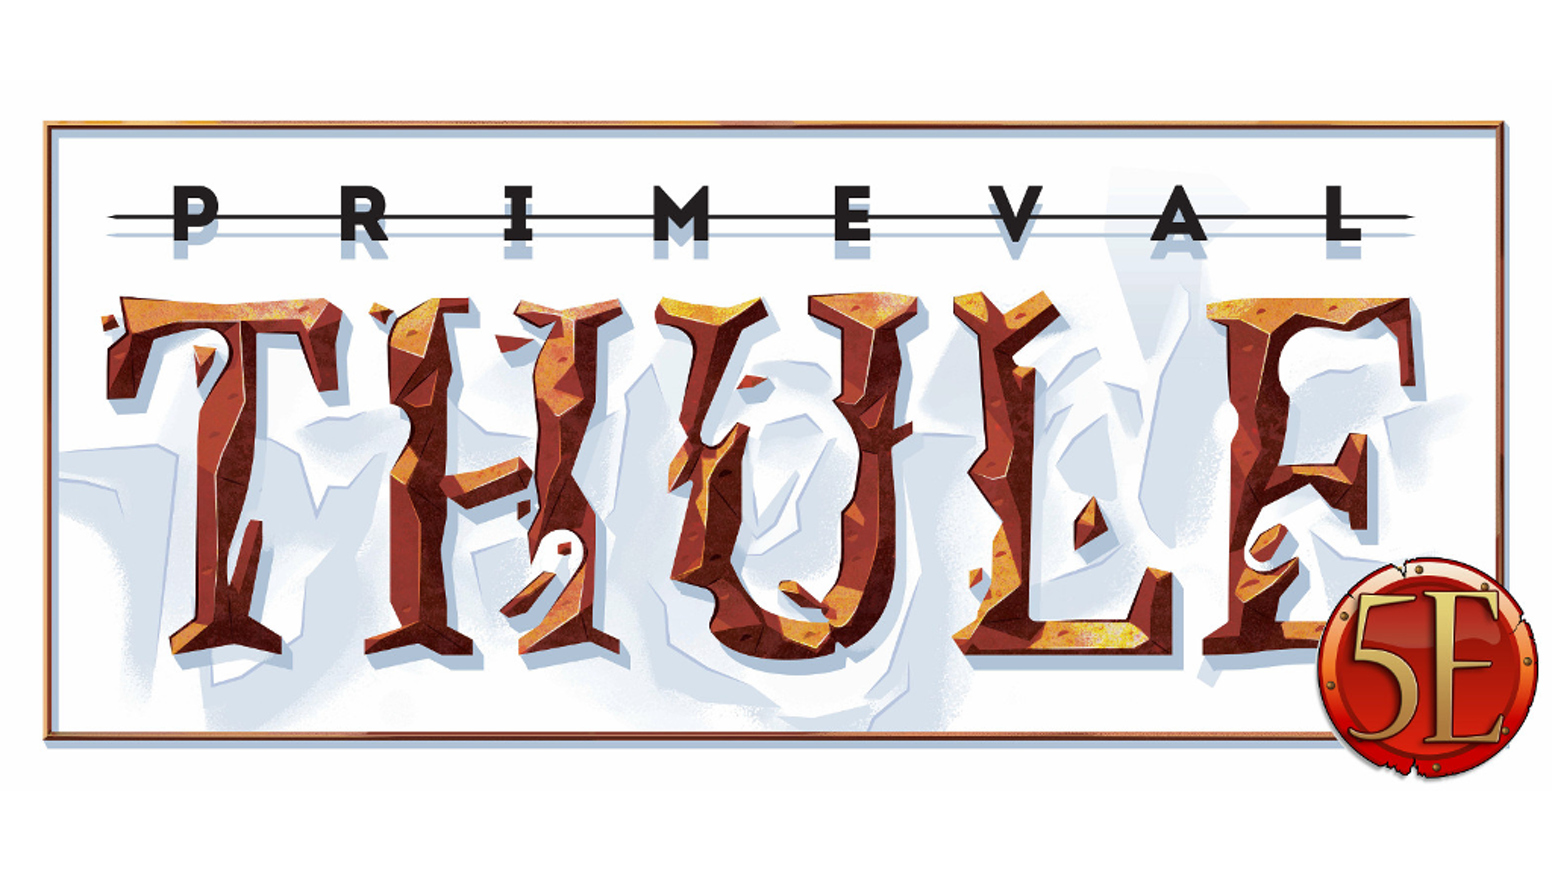 A 5th Edition update of the sword & sorcery, Conan vs. Cthulhu inspired, savage and intense Primeval Thule Campaign Setting.